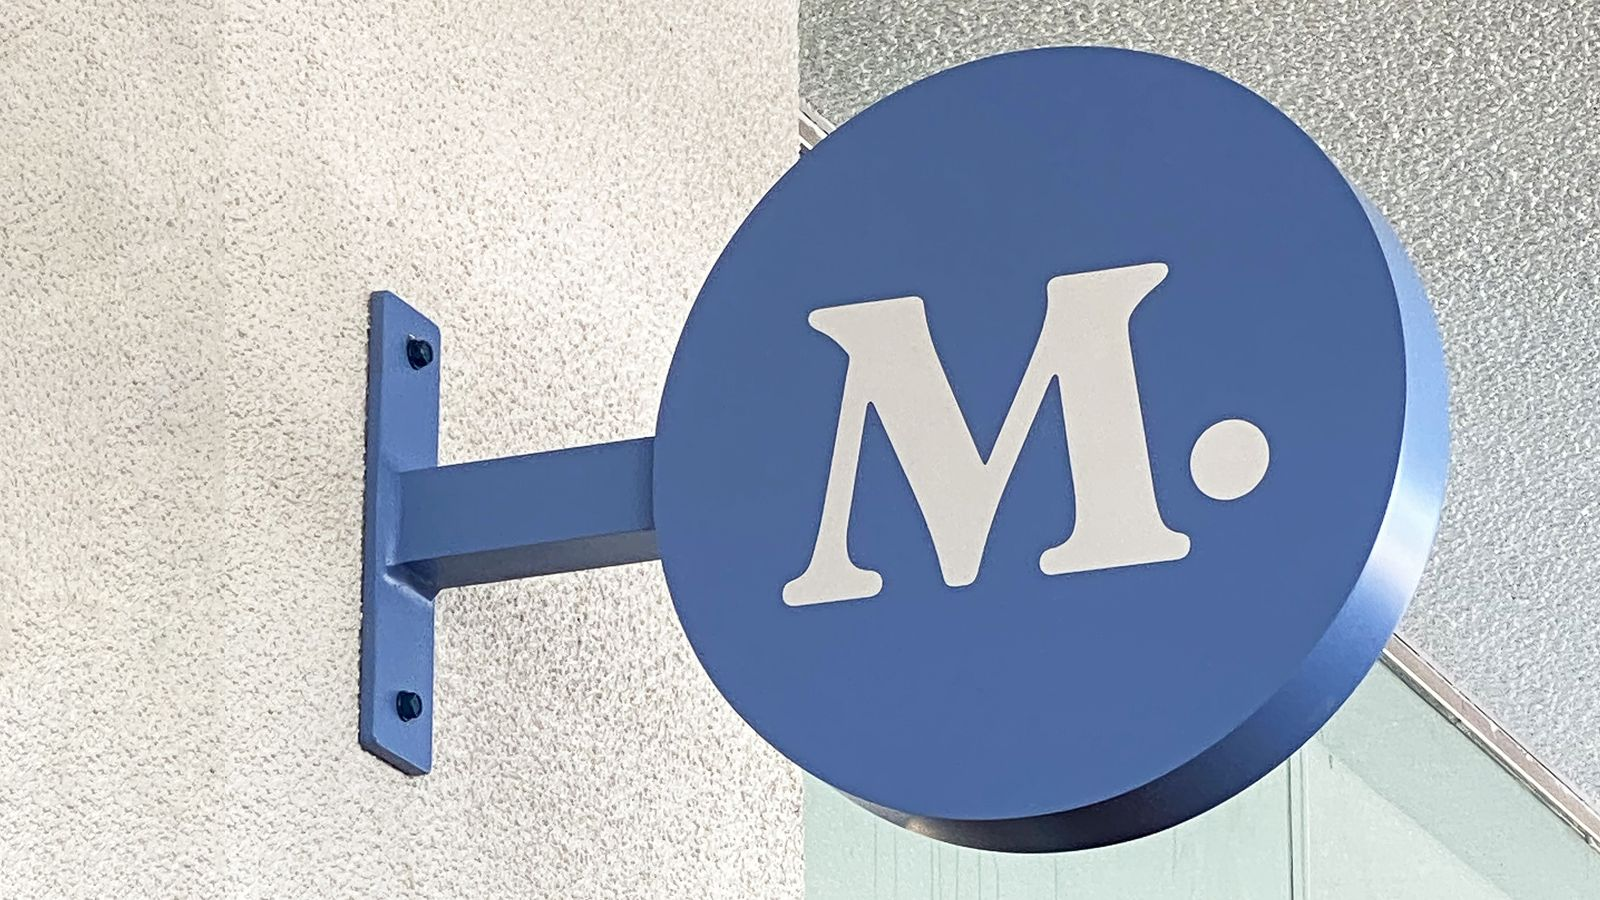 Modern Animal light box logo sign wall-blade in a round shape made of aluminum and acrylic for store interior branding